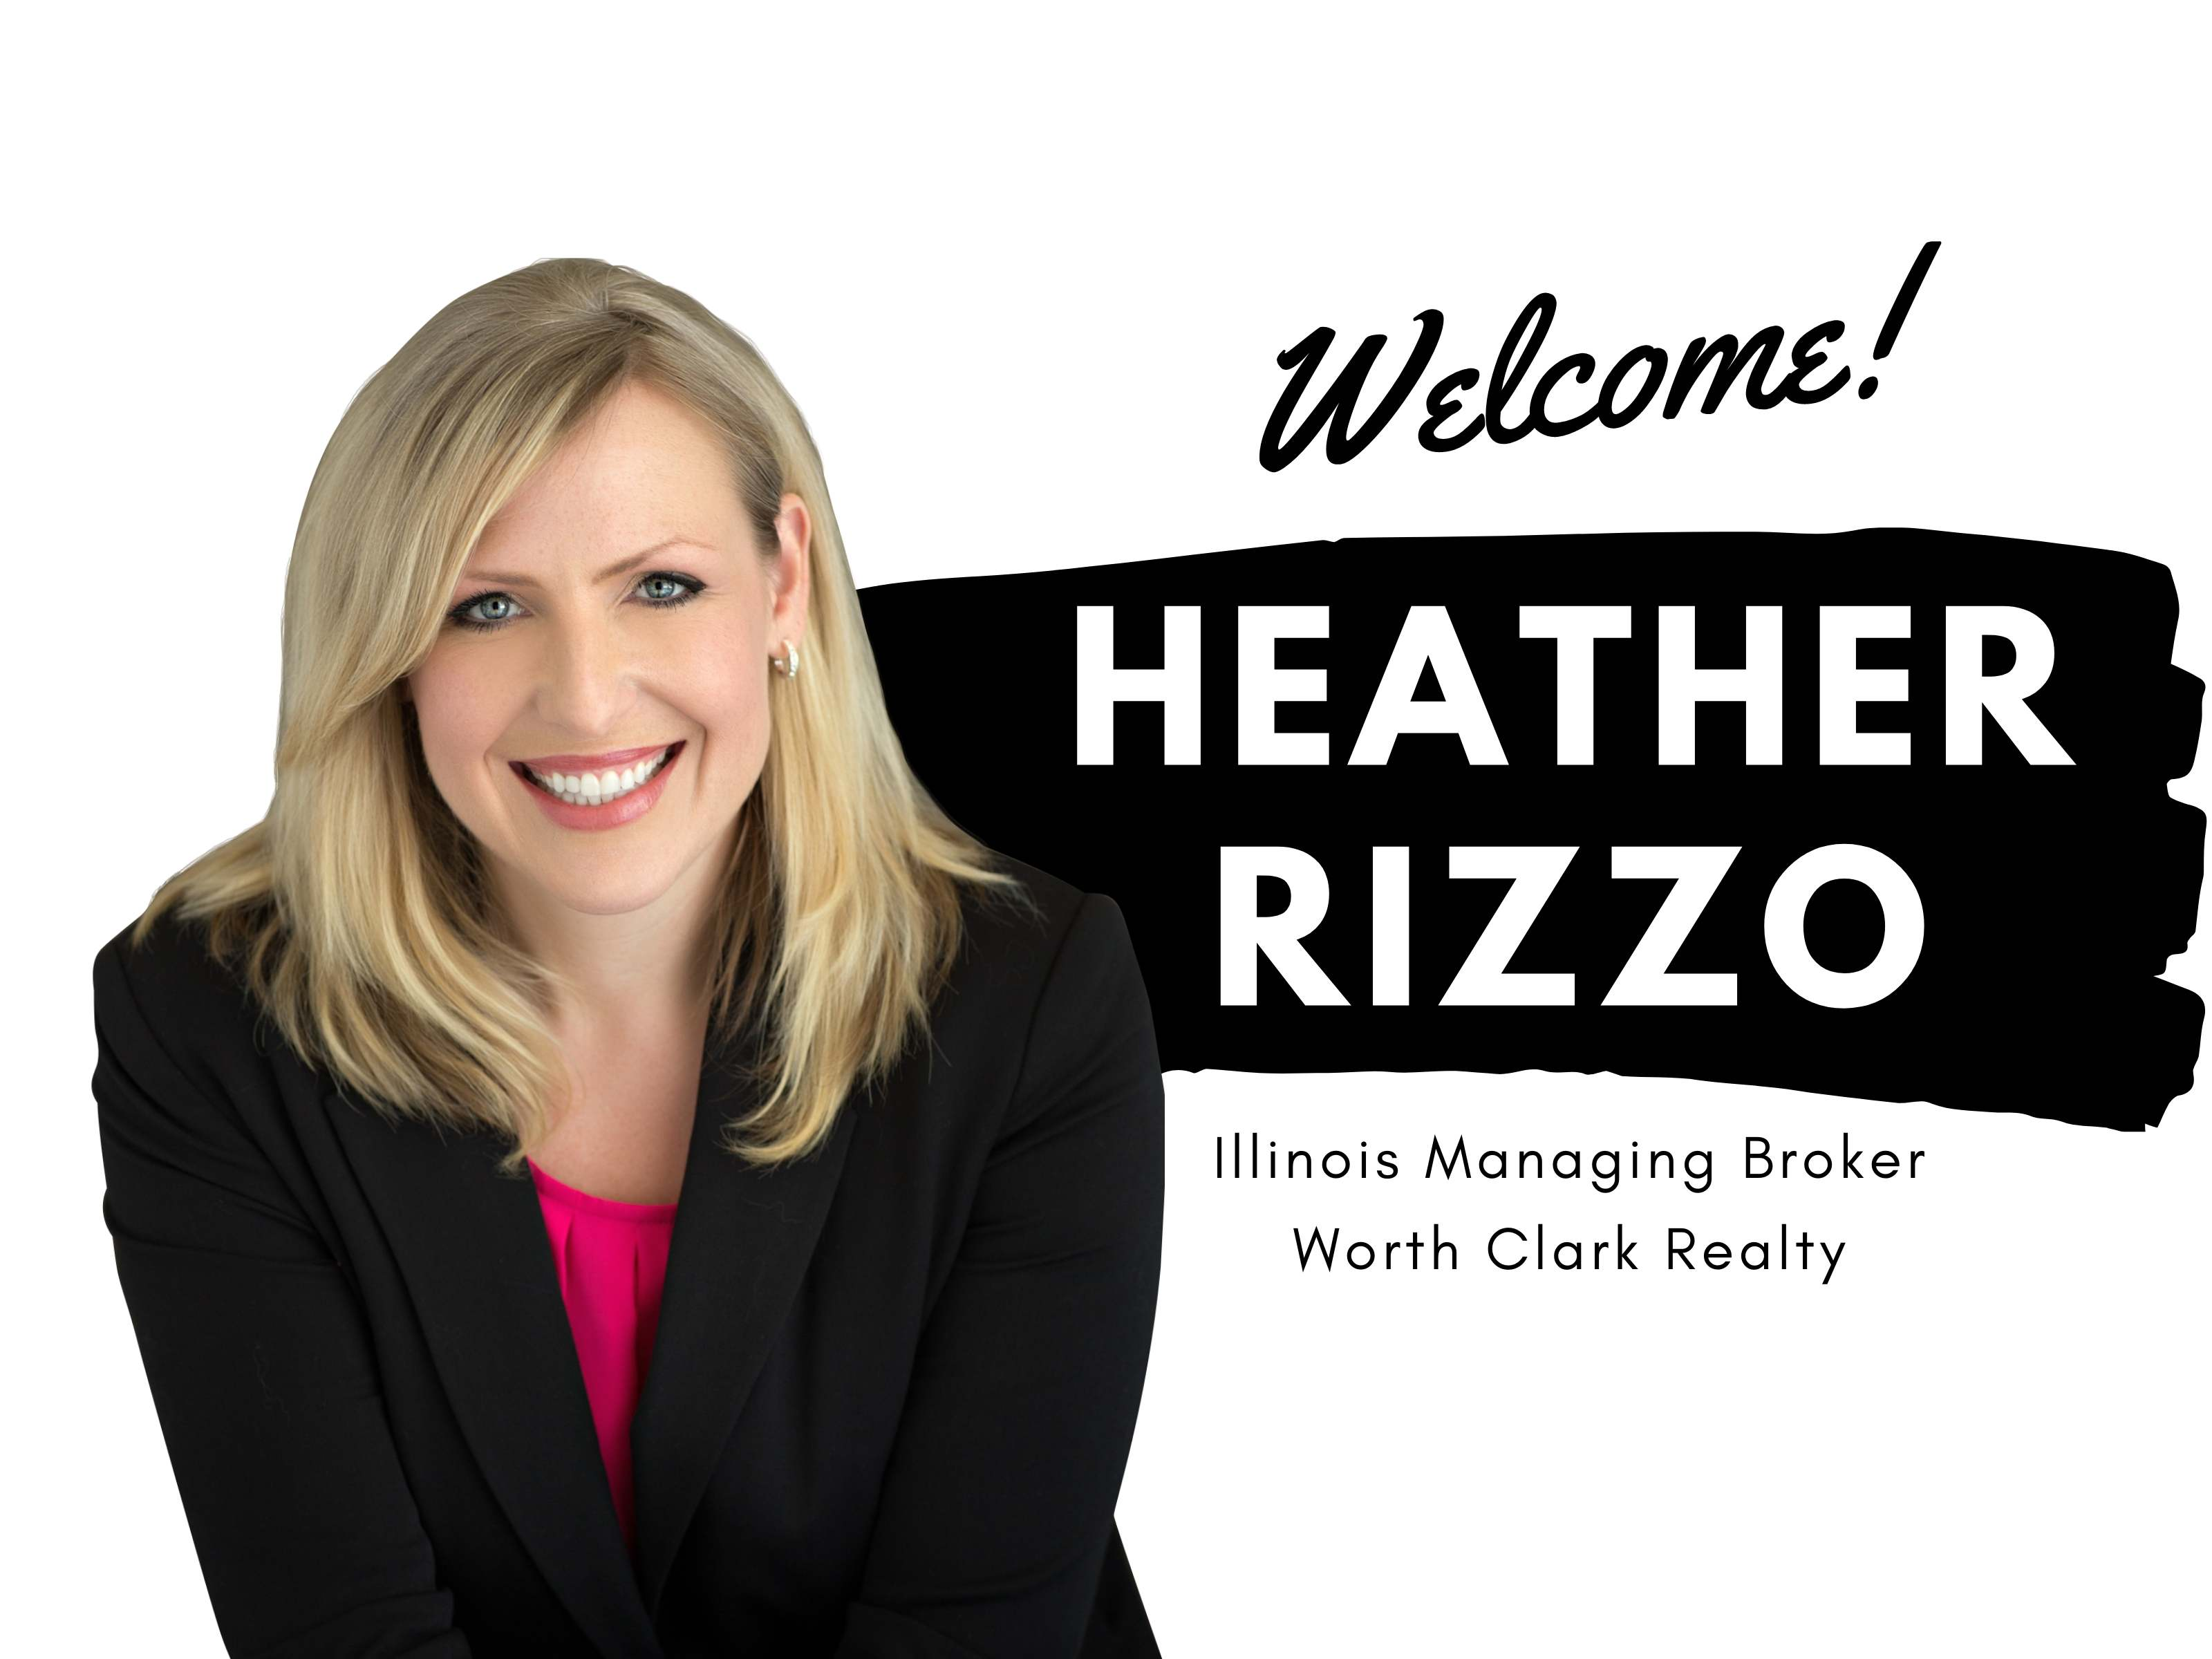 Heather Rizzo Joins Worth Clark Realty!